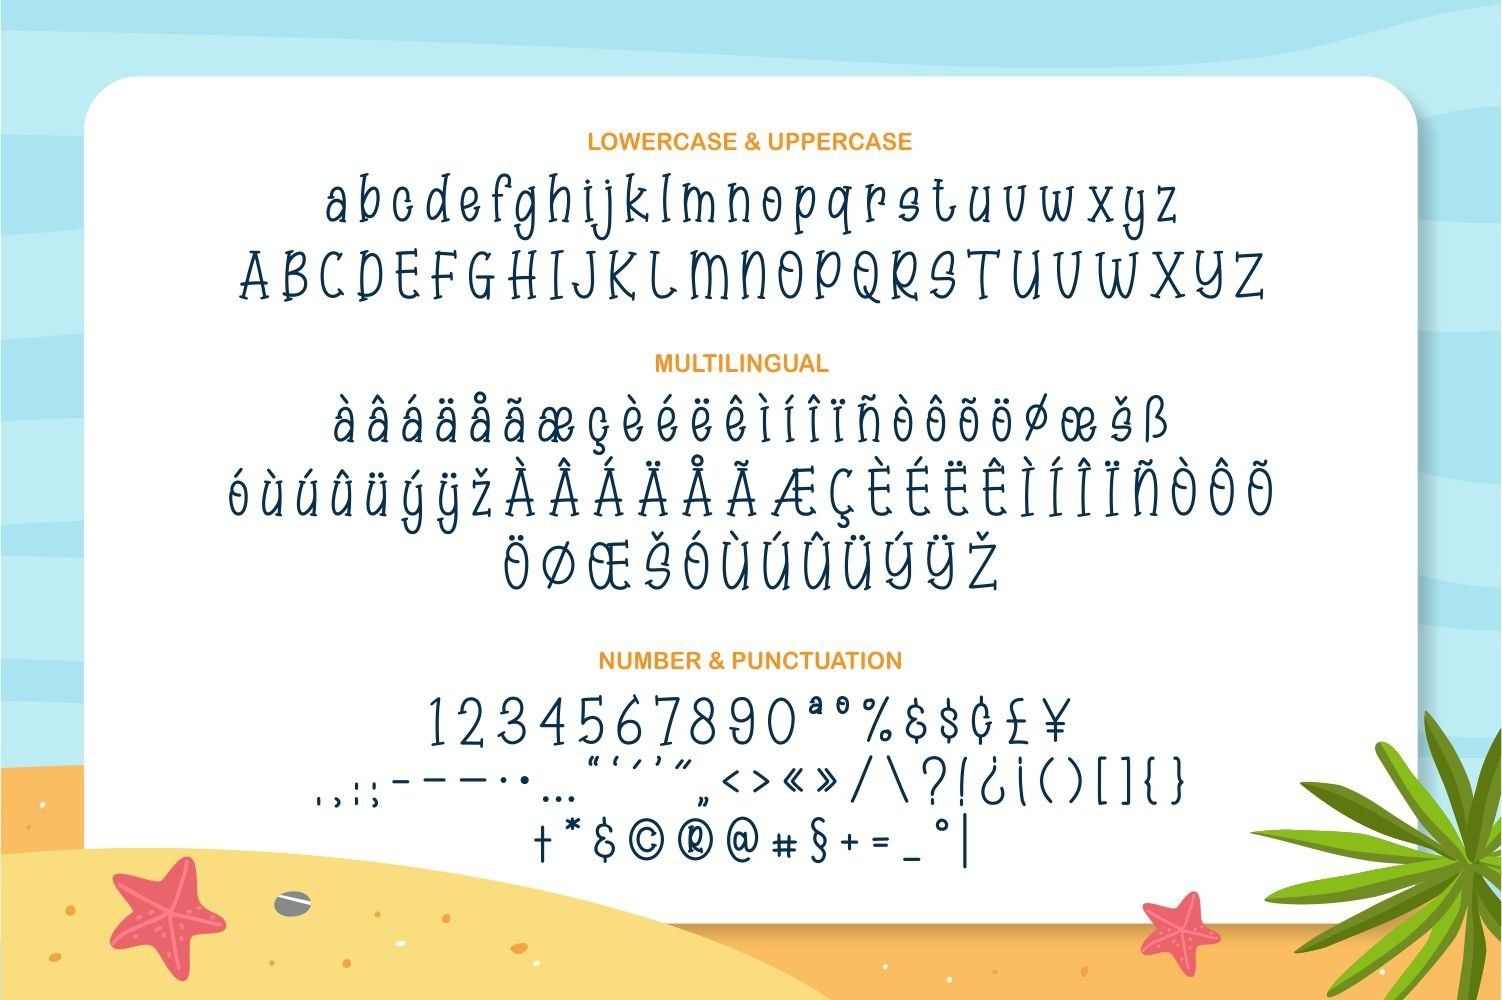 Hellocity - Handwritten Playful and Cute Typeface example image 4